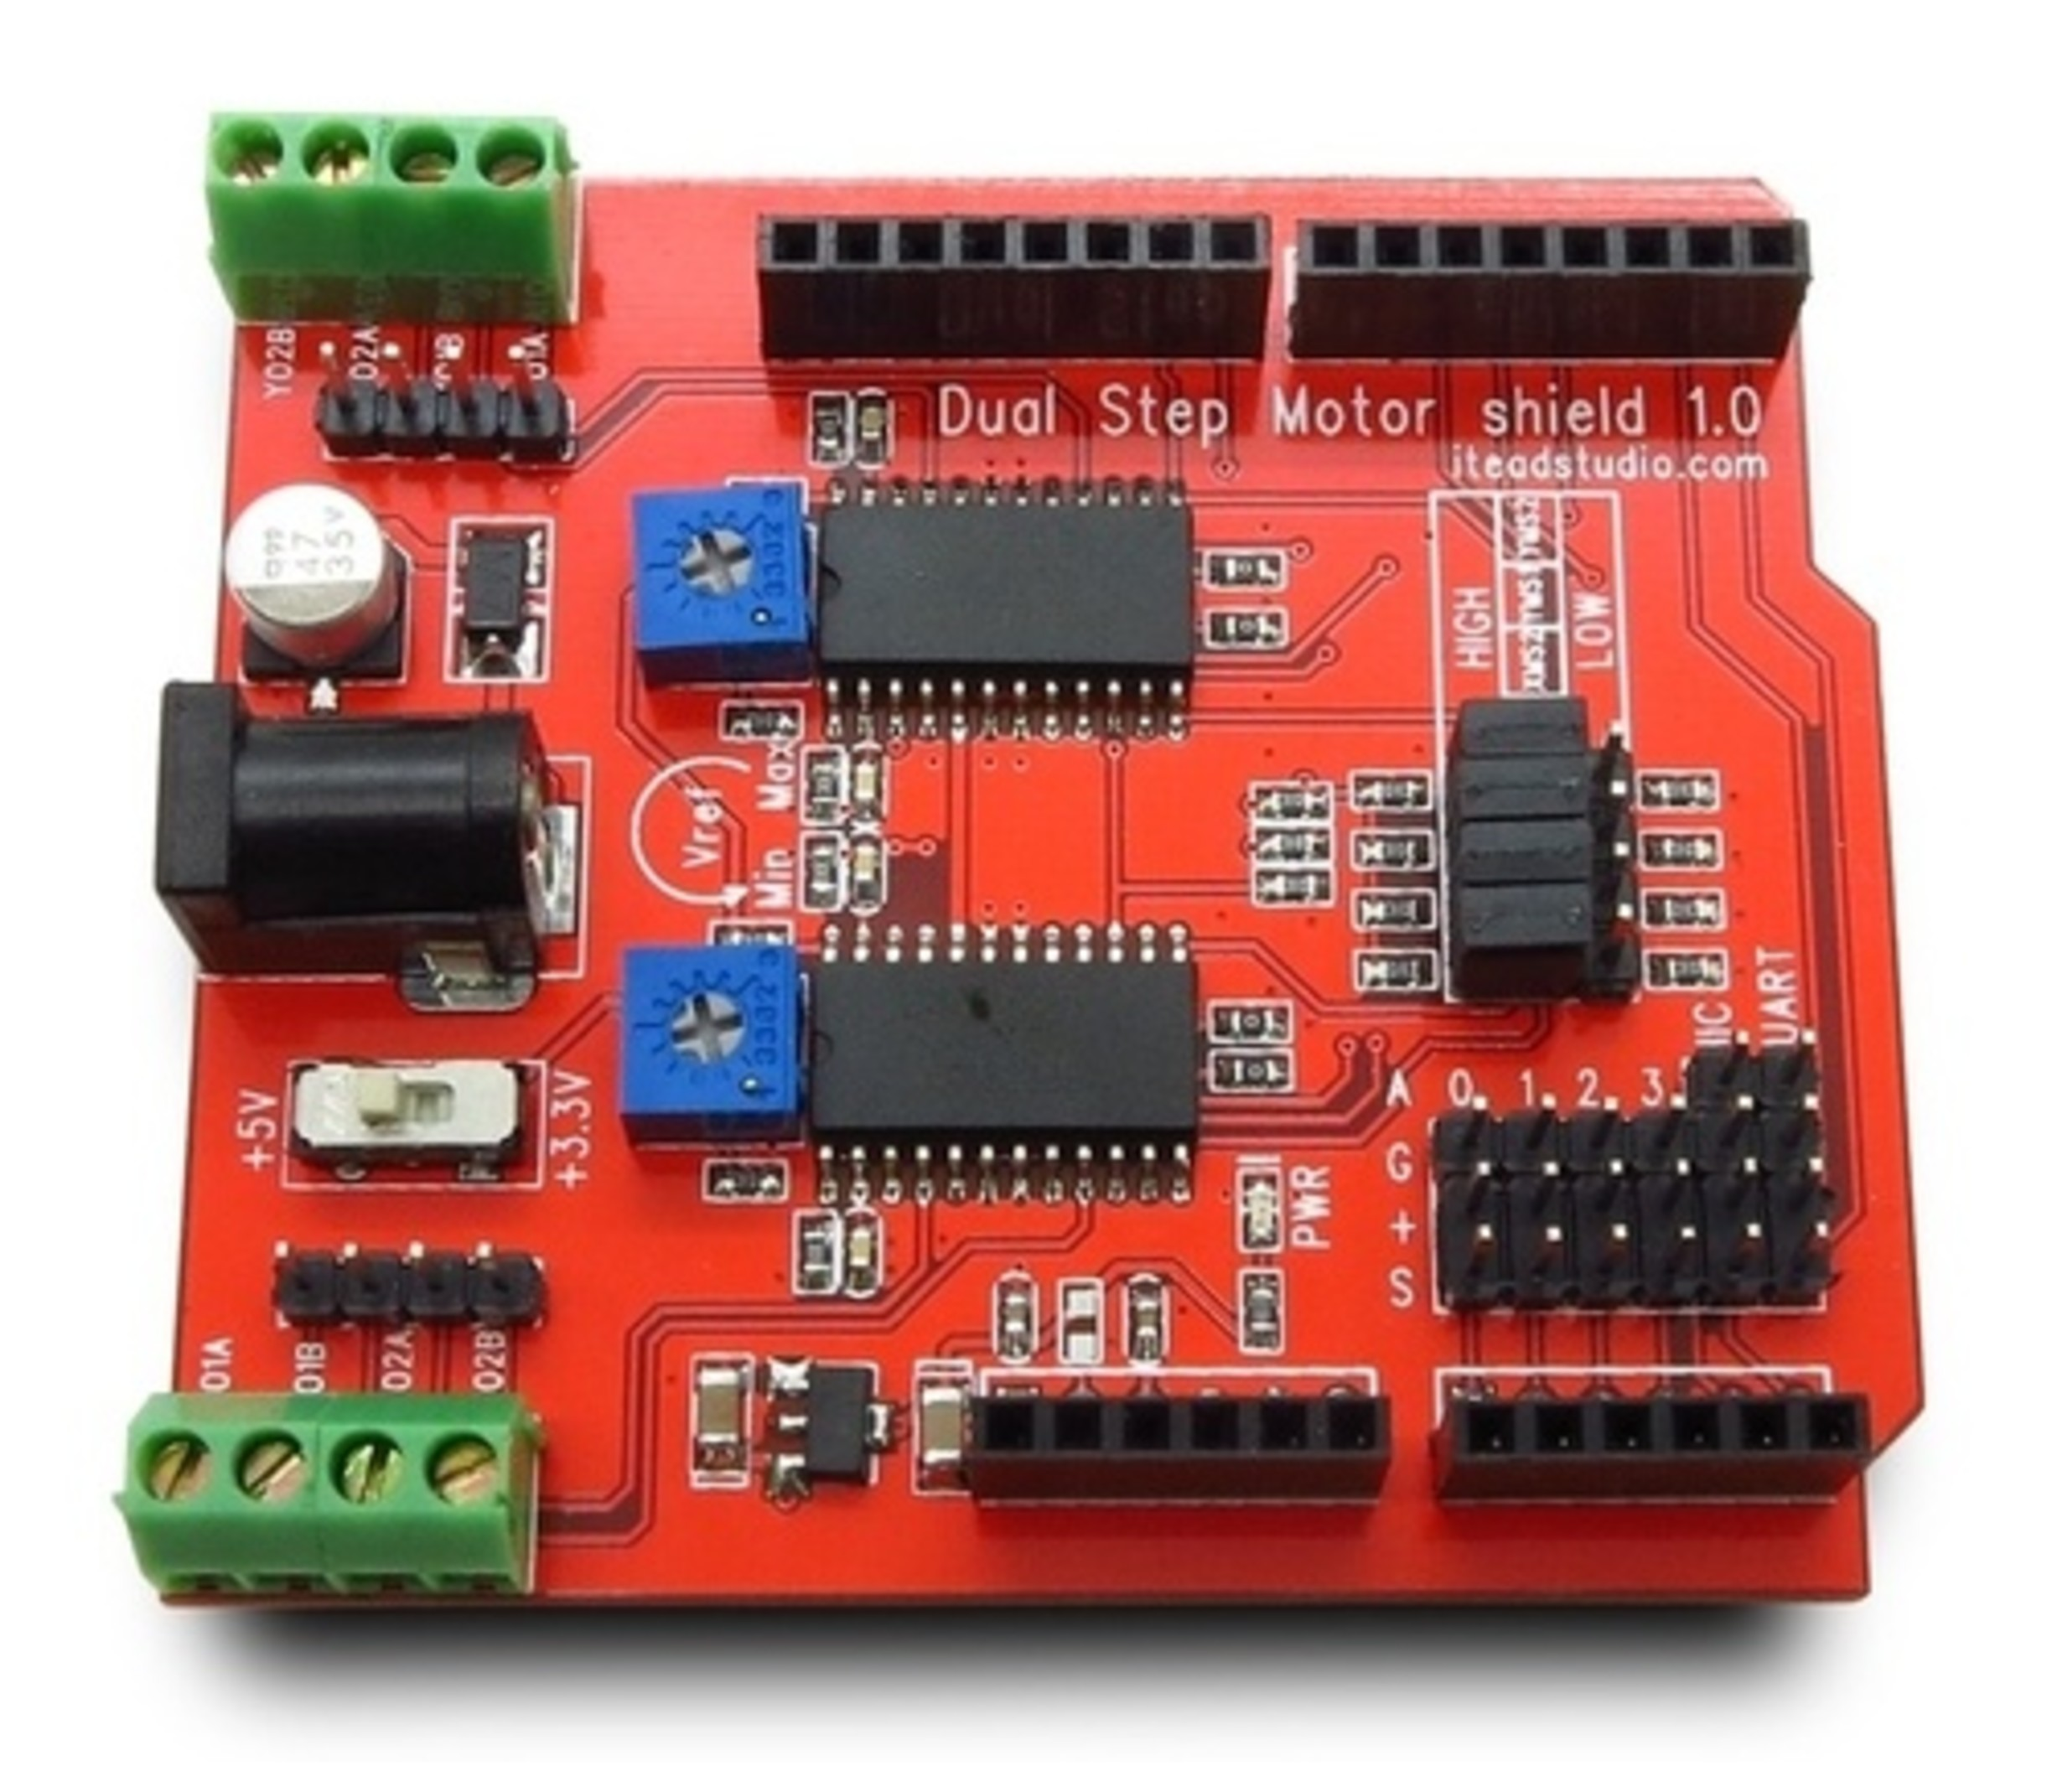 Dual step motor shield v1.1